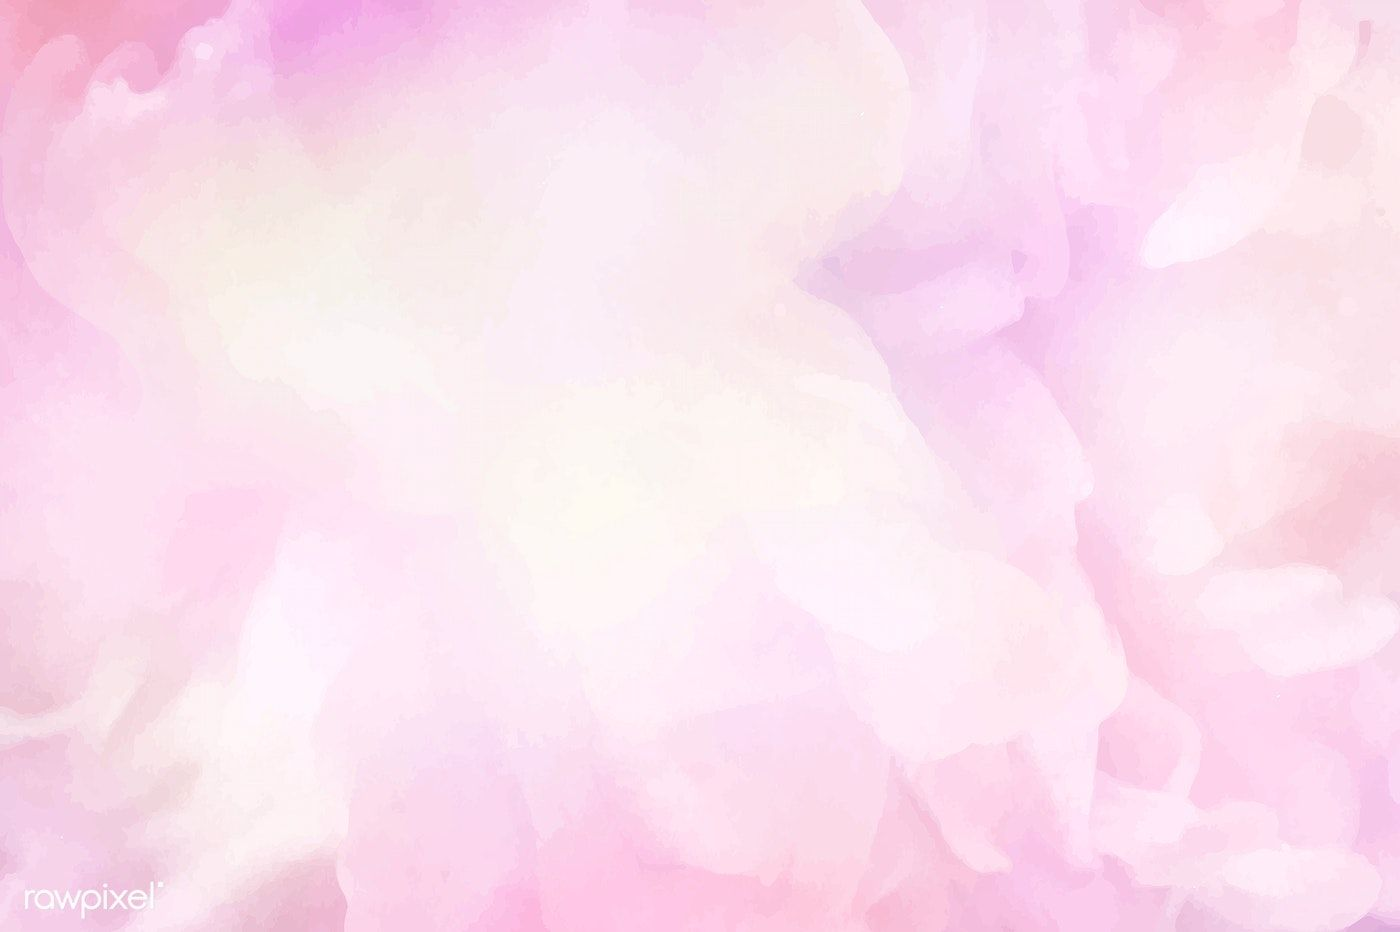 Vibrant Pink Watercolor Painting Background Free Image By